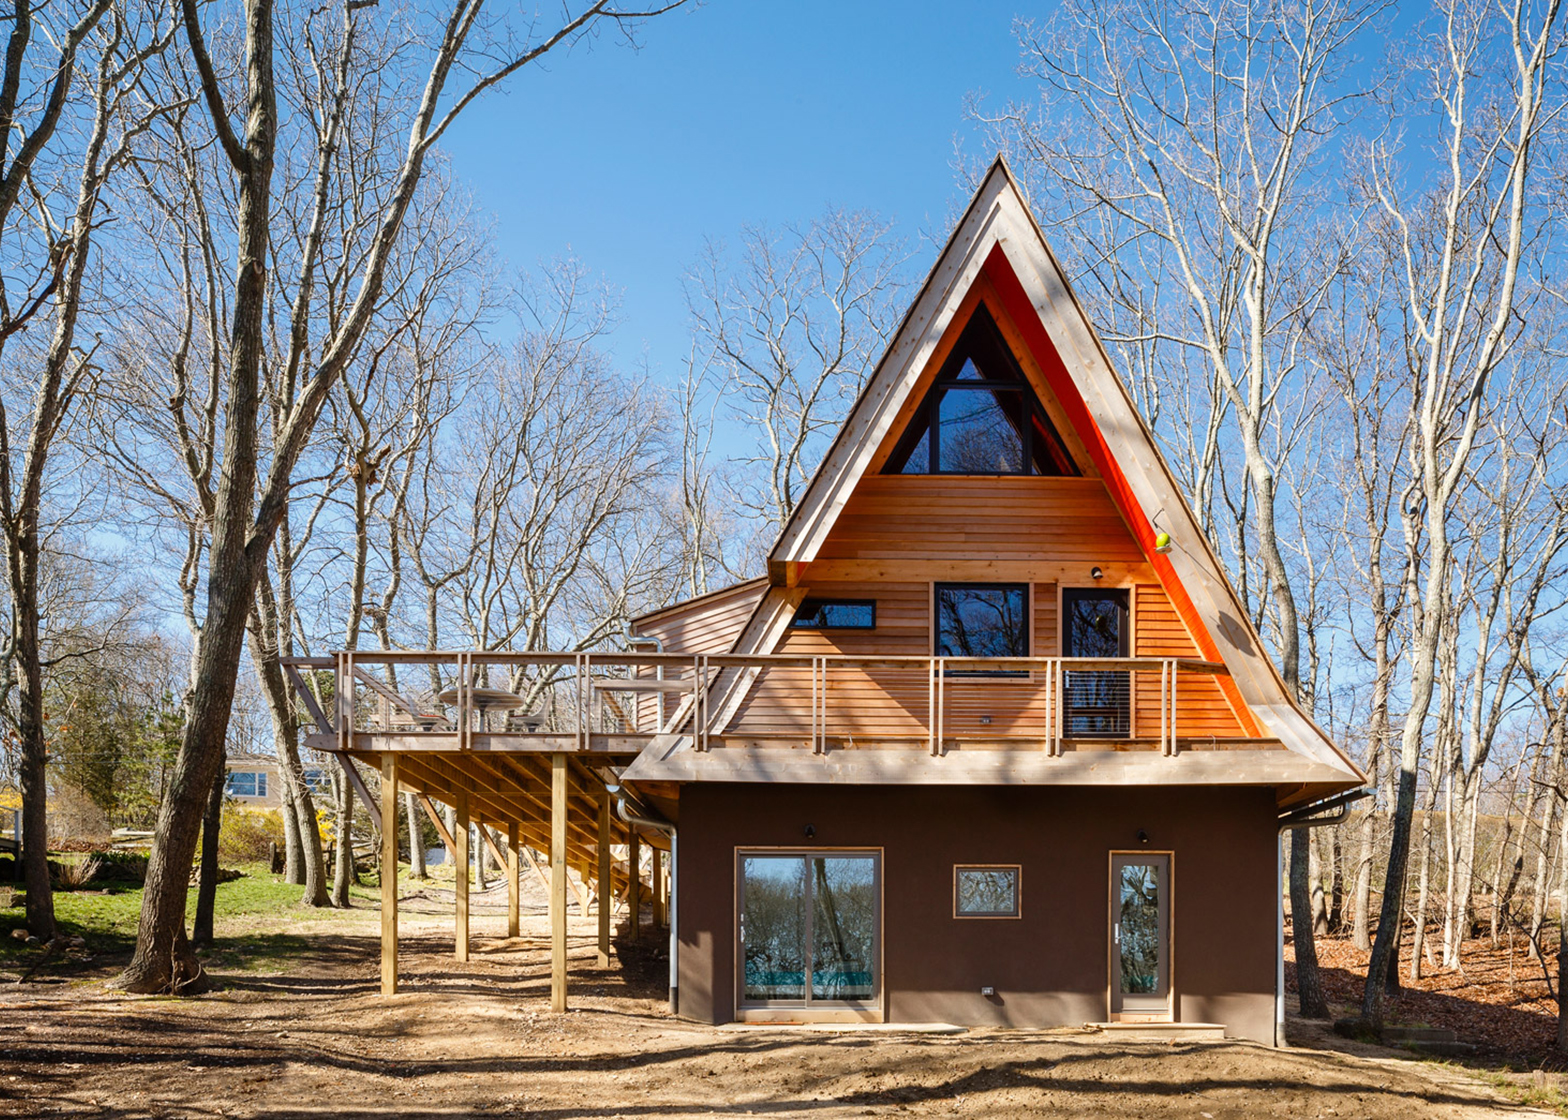 Triangle House by Doon Architecture